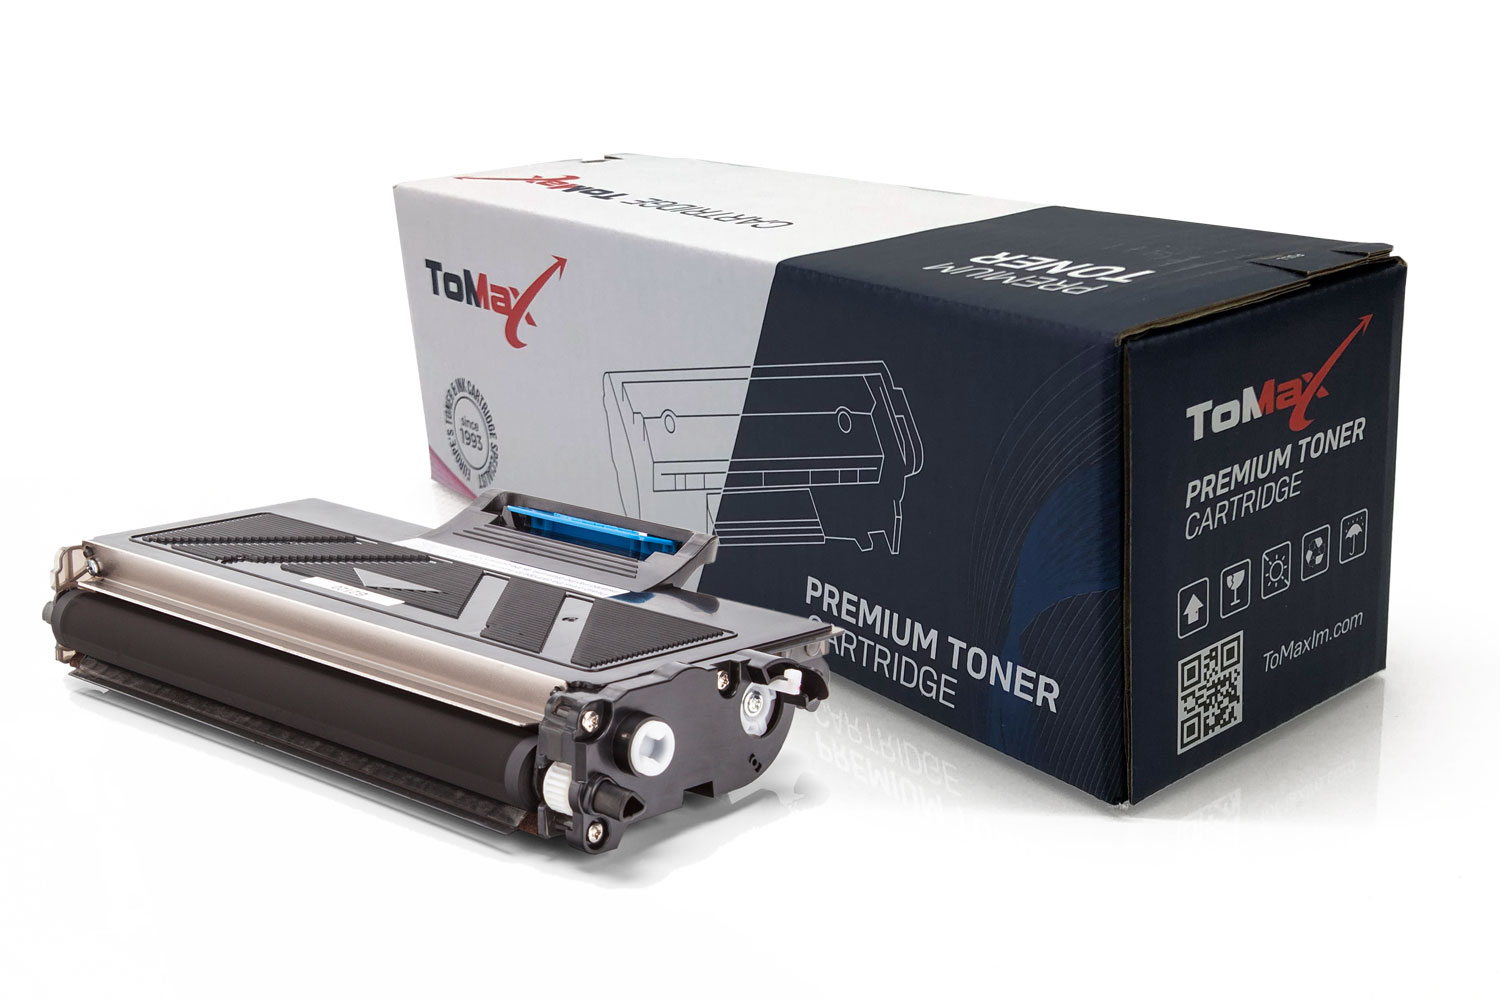 ToMax Premium Toner Cartridge replaces Brother TN-1050 Black